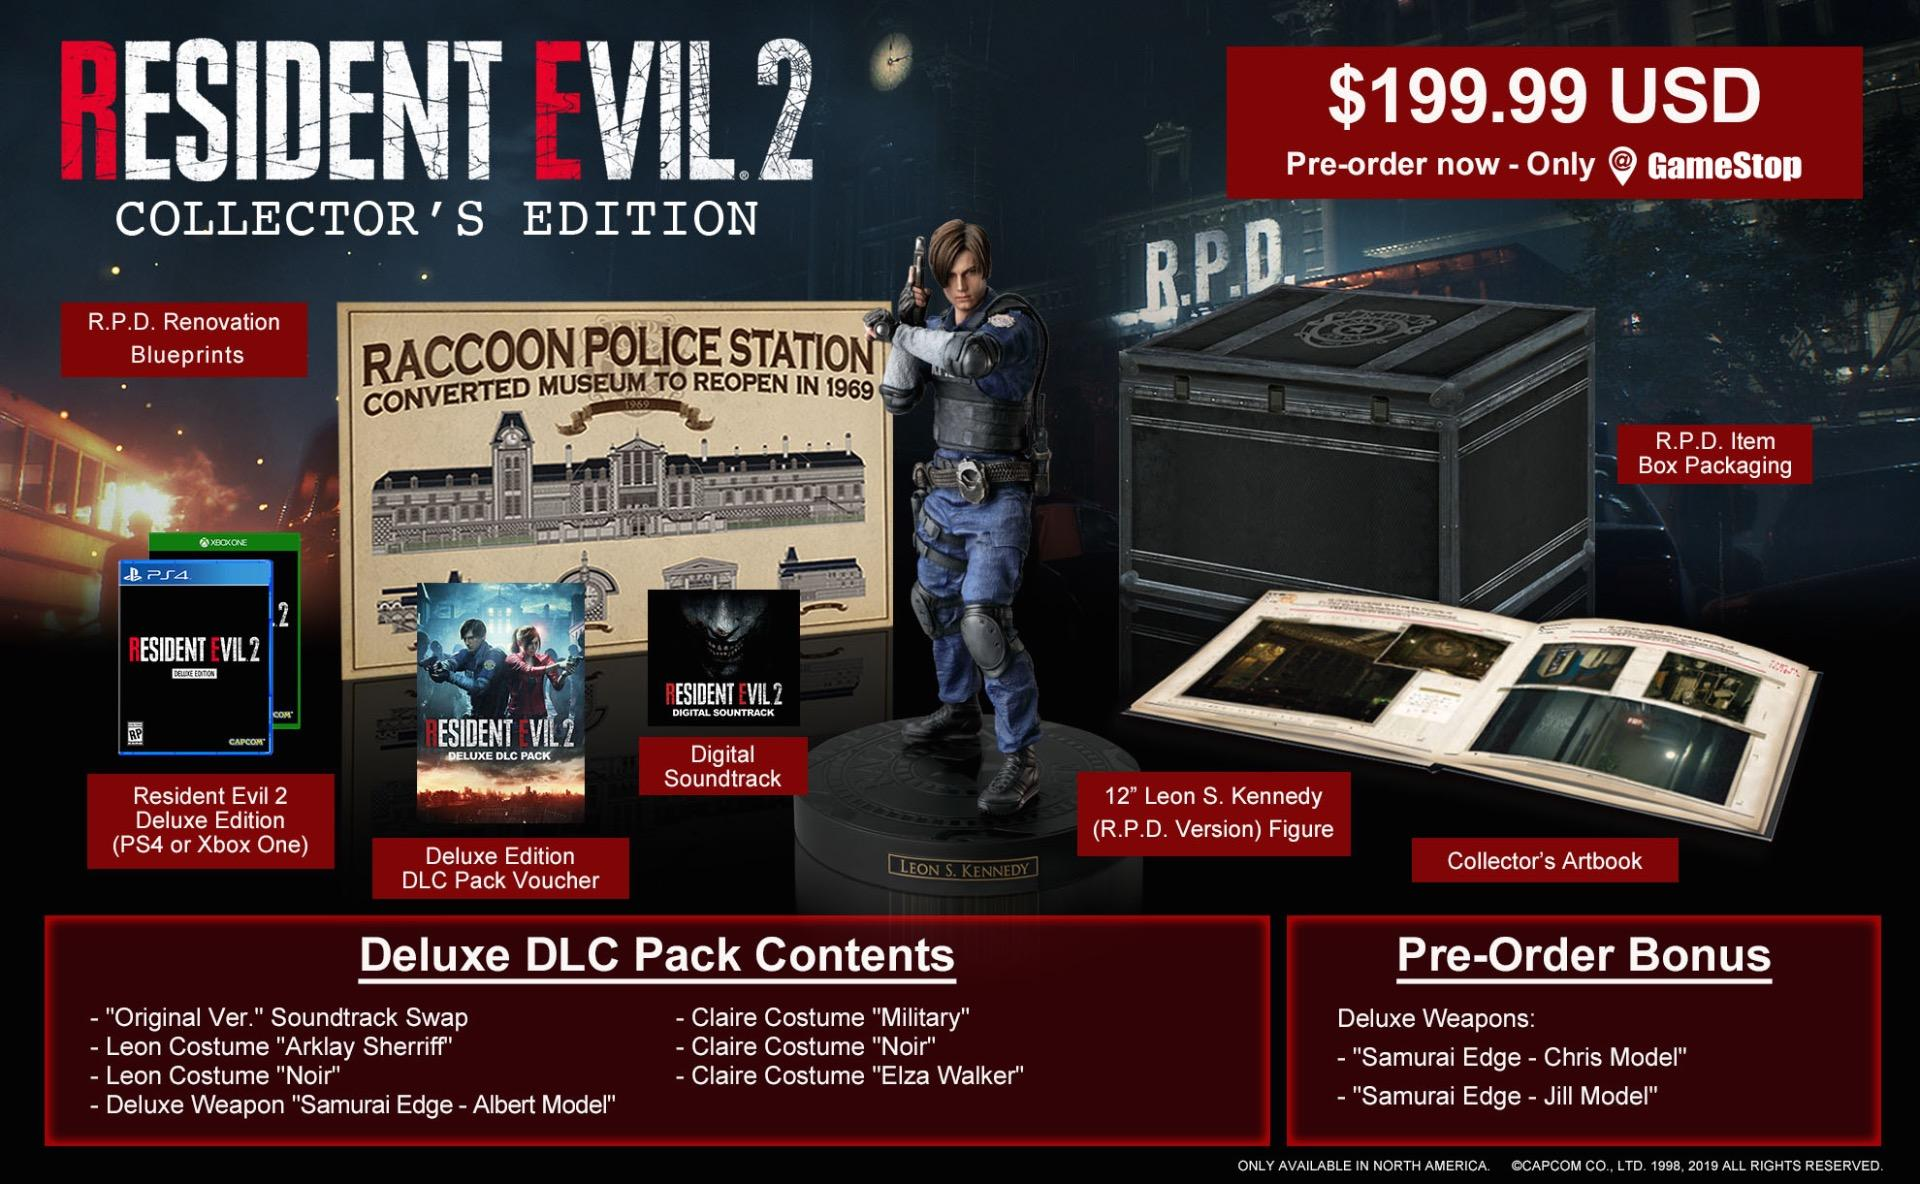 Resident Evil 2 Collector's Edition revealed | PlayStation 4